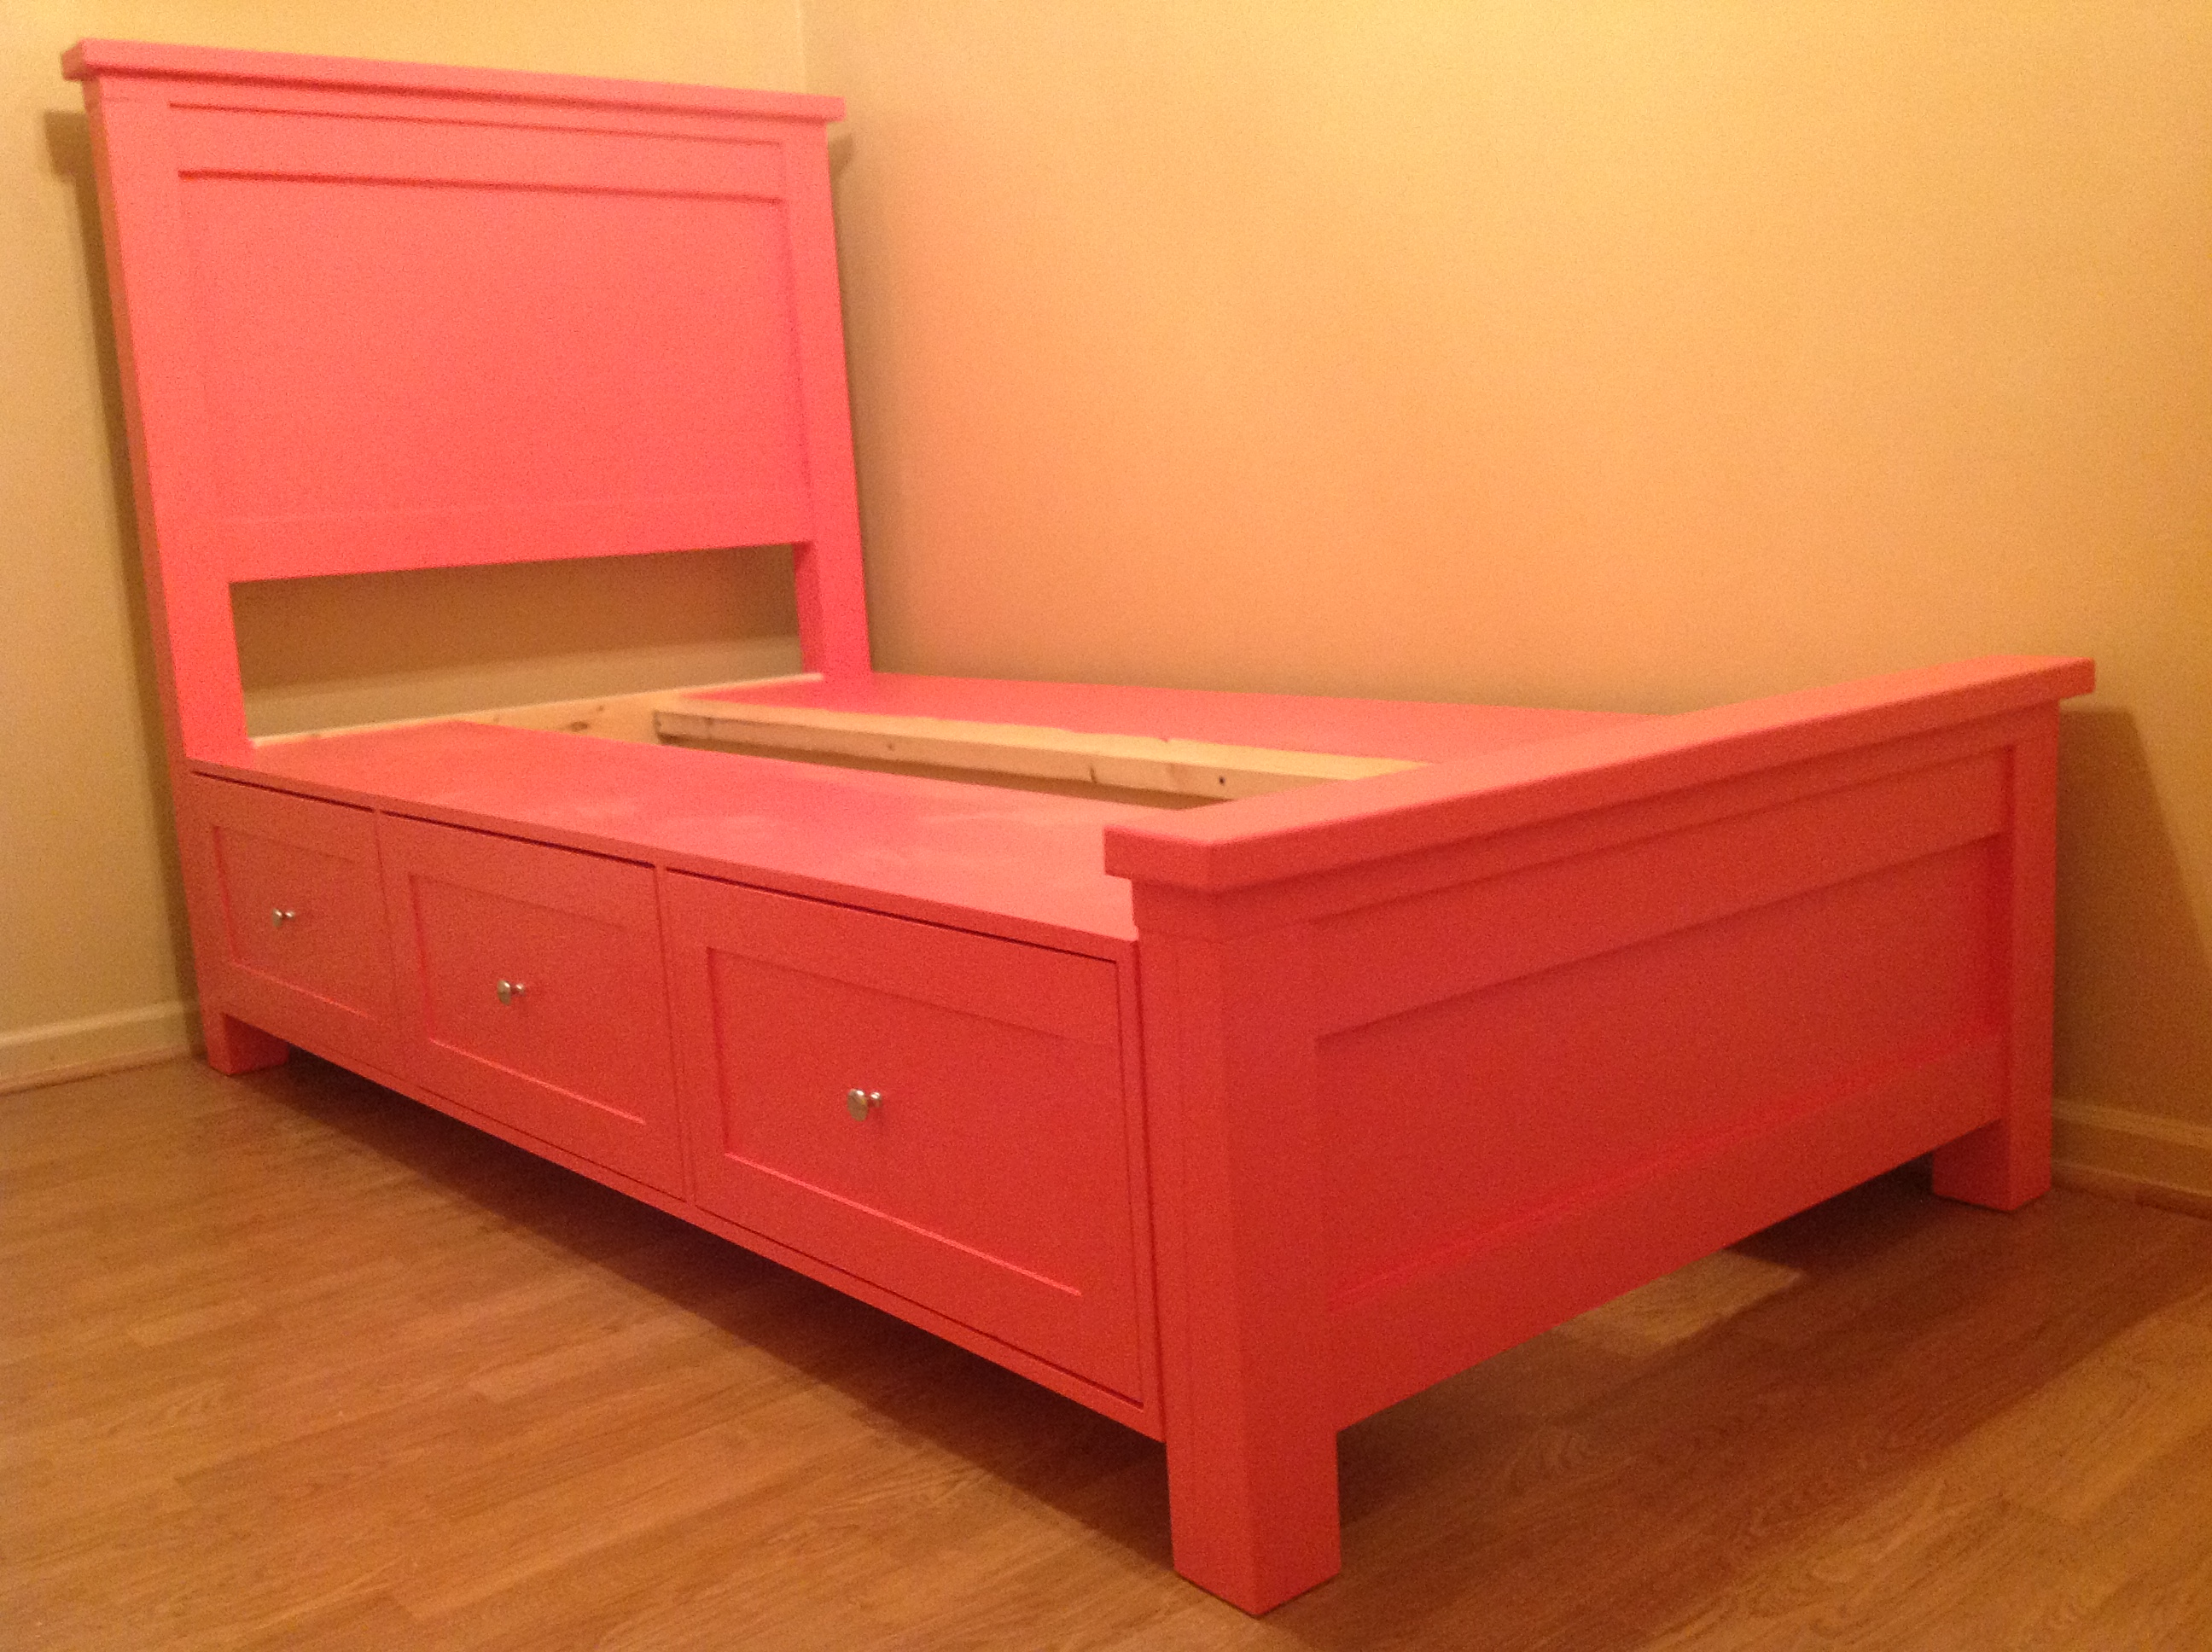 Ana White First Project Farmhouse Storage Bed Diy